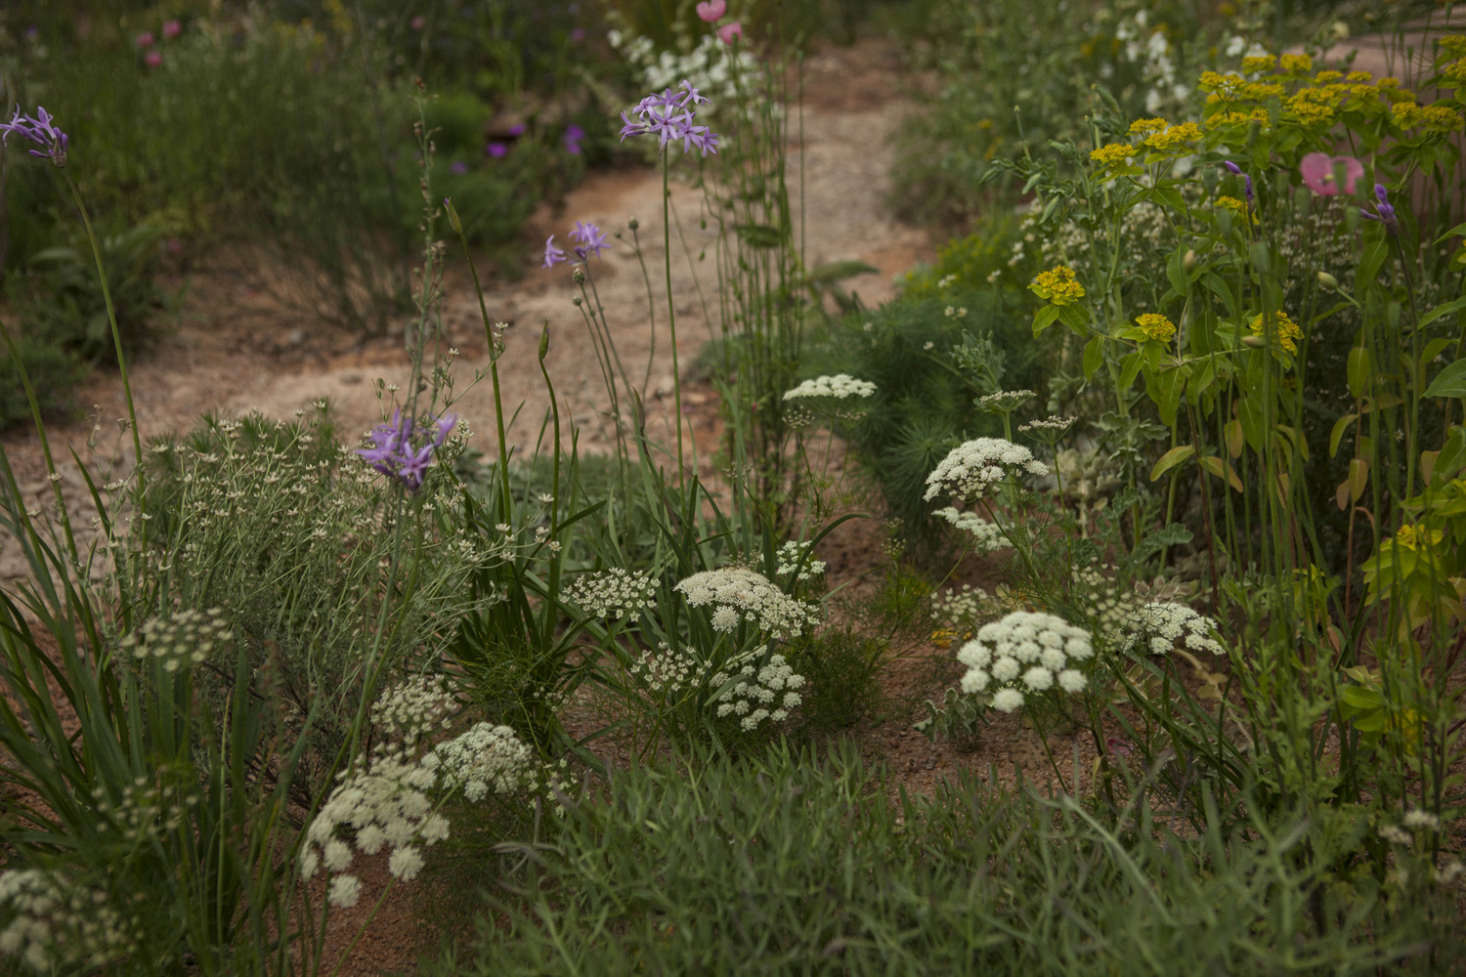 Insect-friendly umbels of sea carrot (Daucus gingidium) with rangy mauves and pinks and a shot of euphorbia yellow.